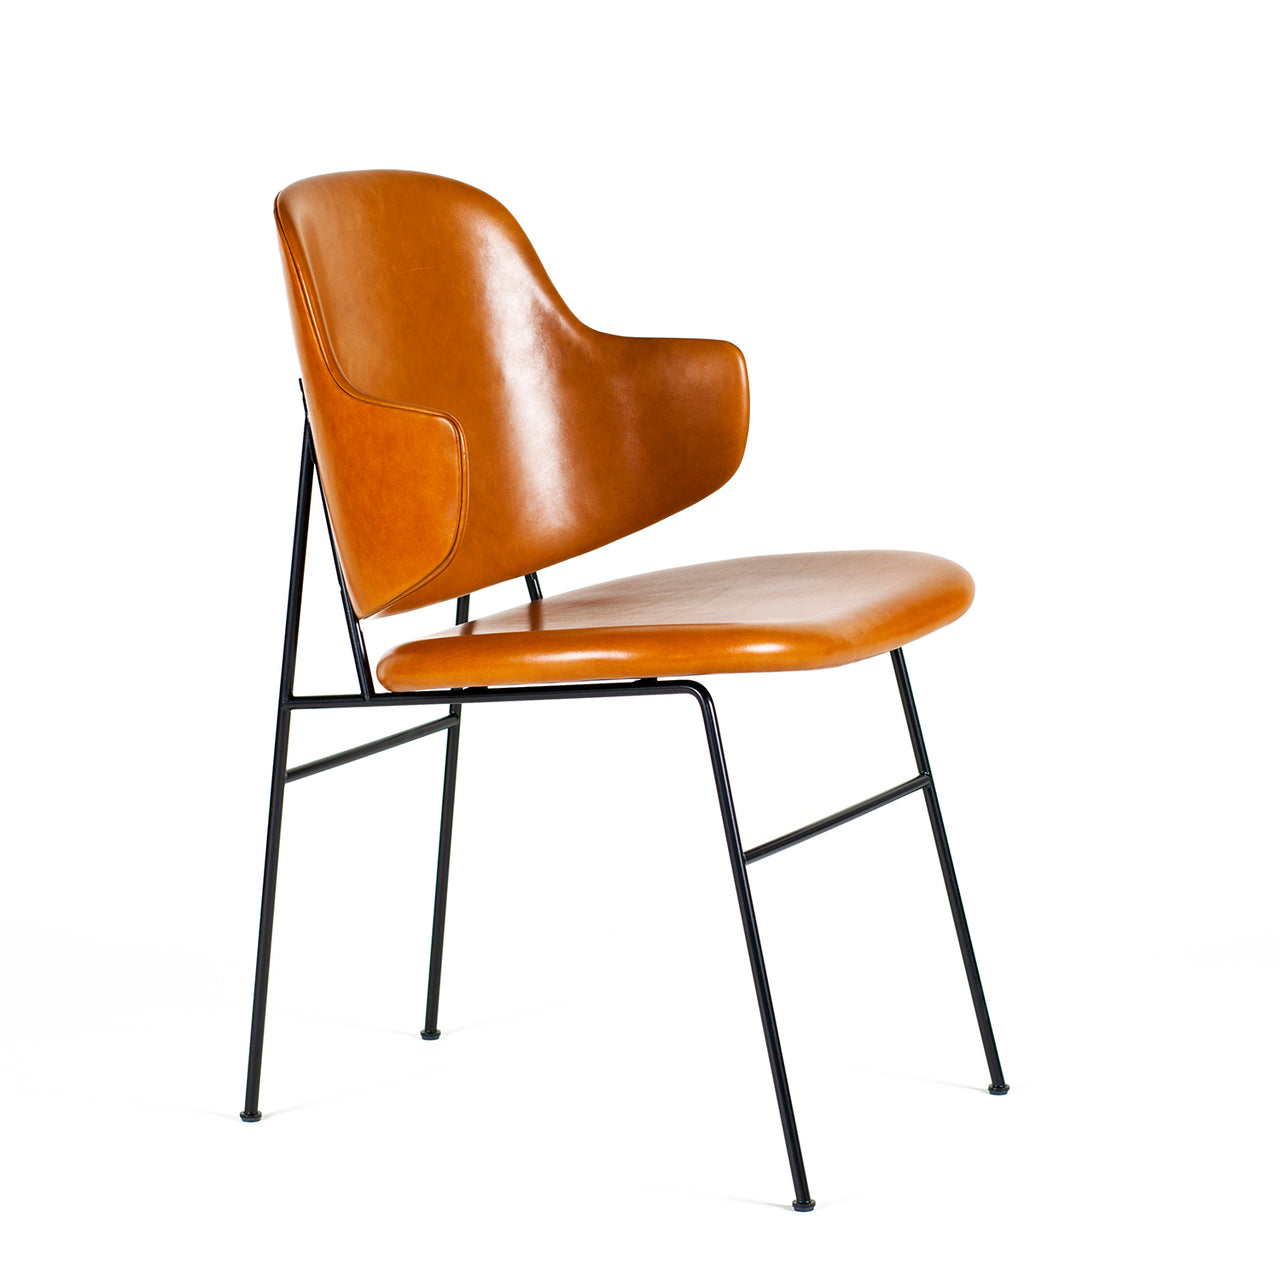 Penguin Dining Chair: Fully Upholstered